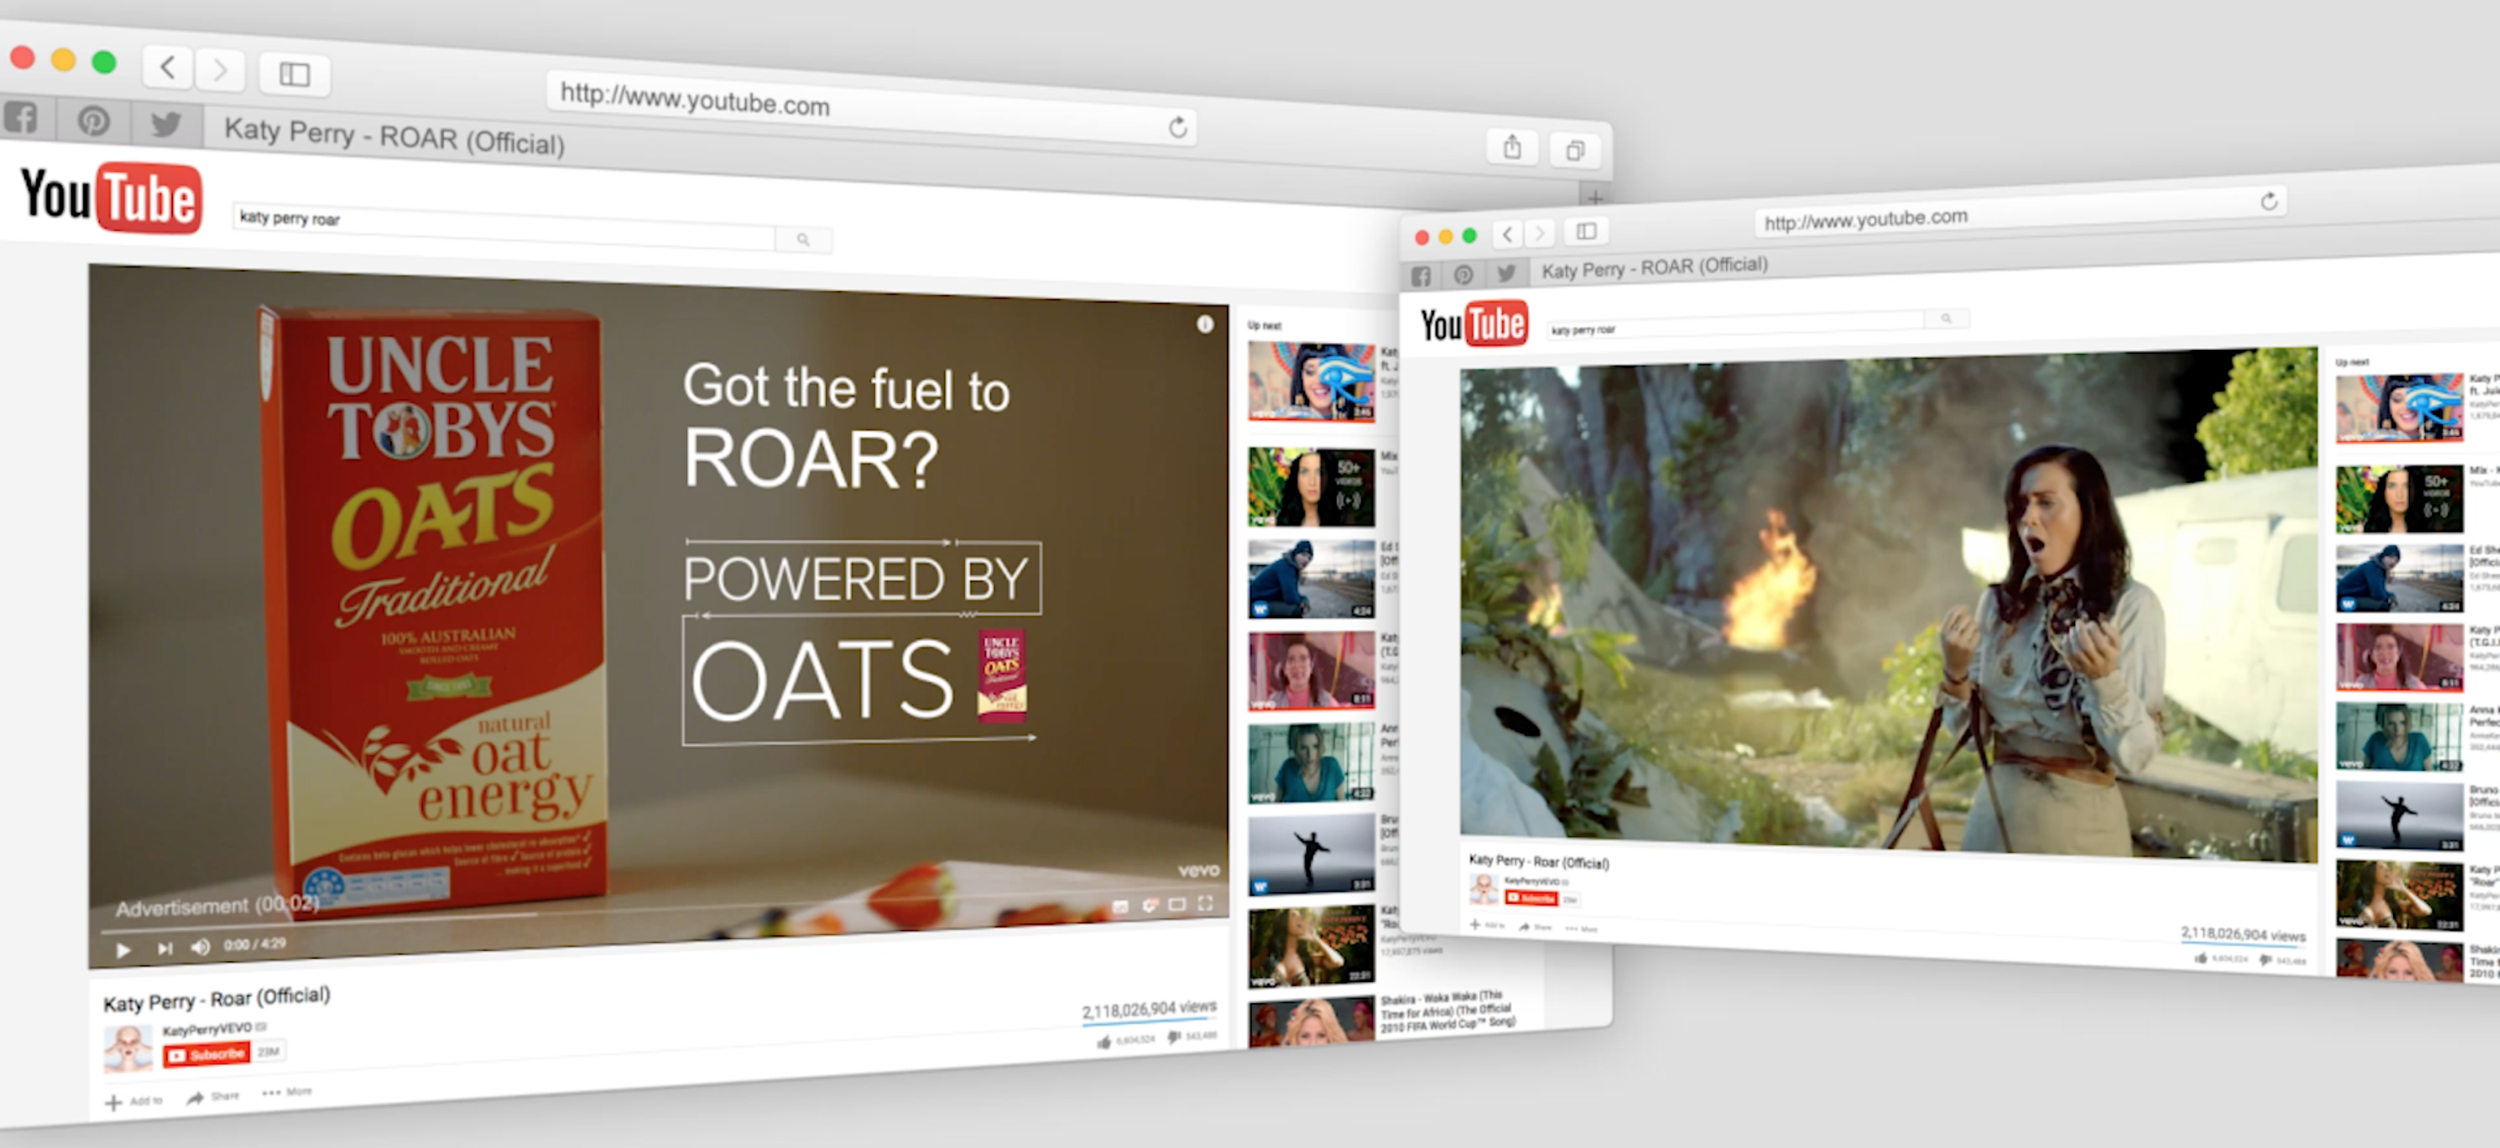 Energy related messages were tailored to match the content being viewed on YouTube.